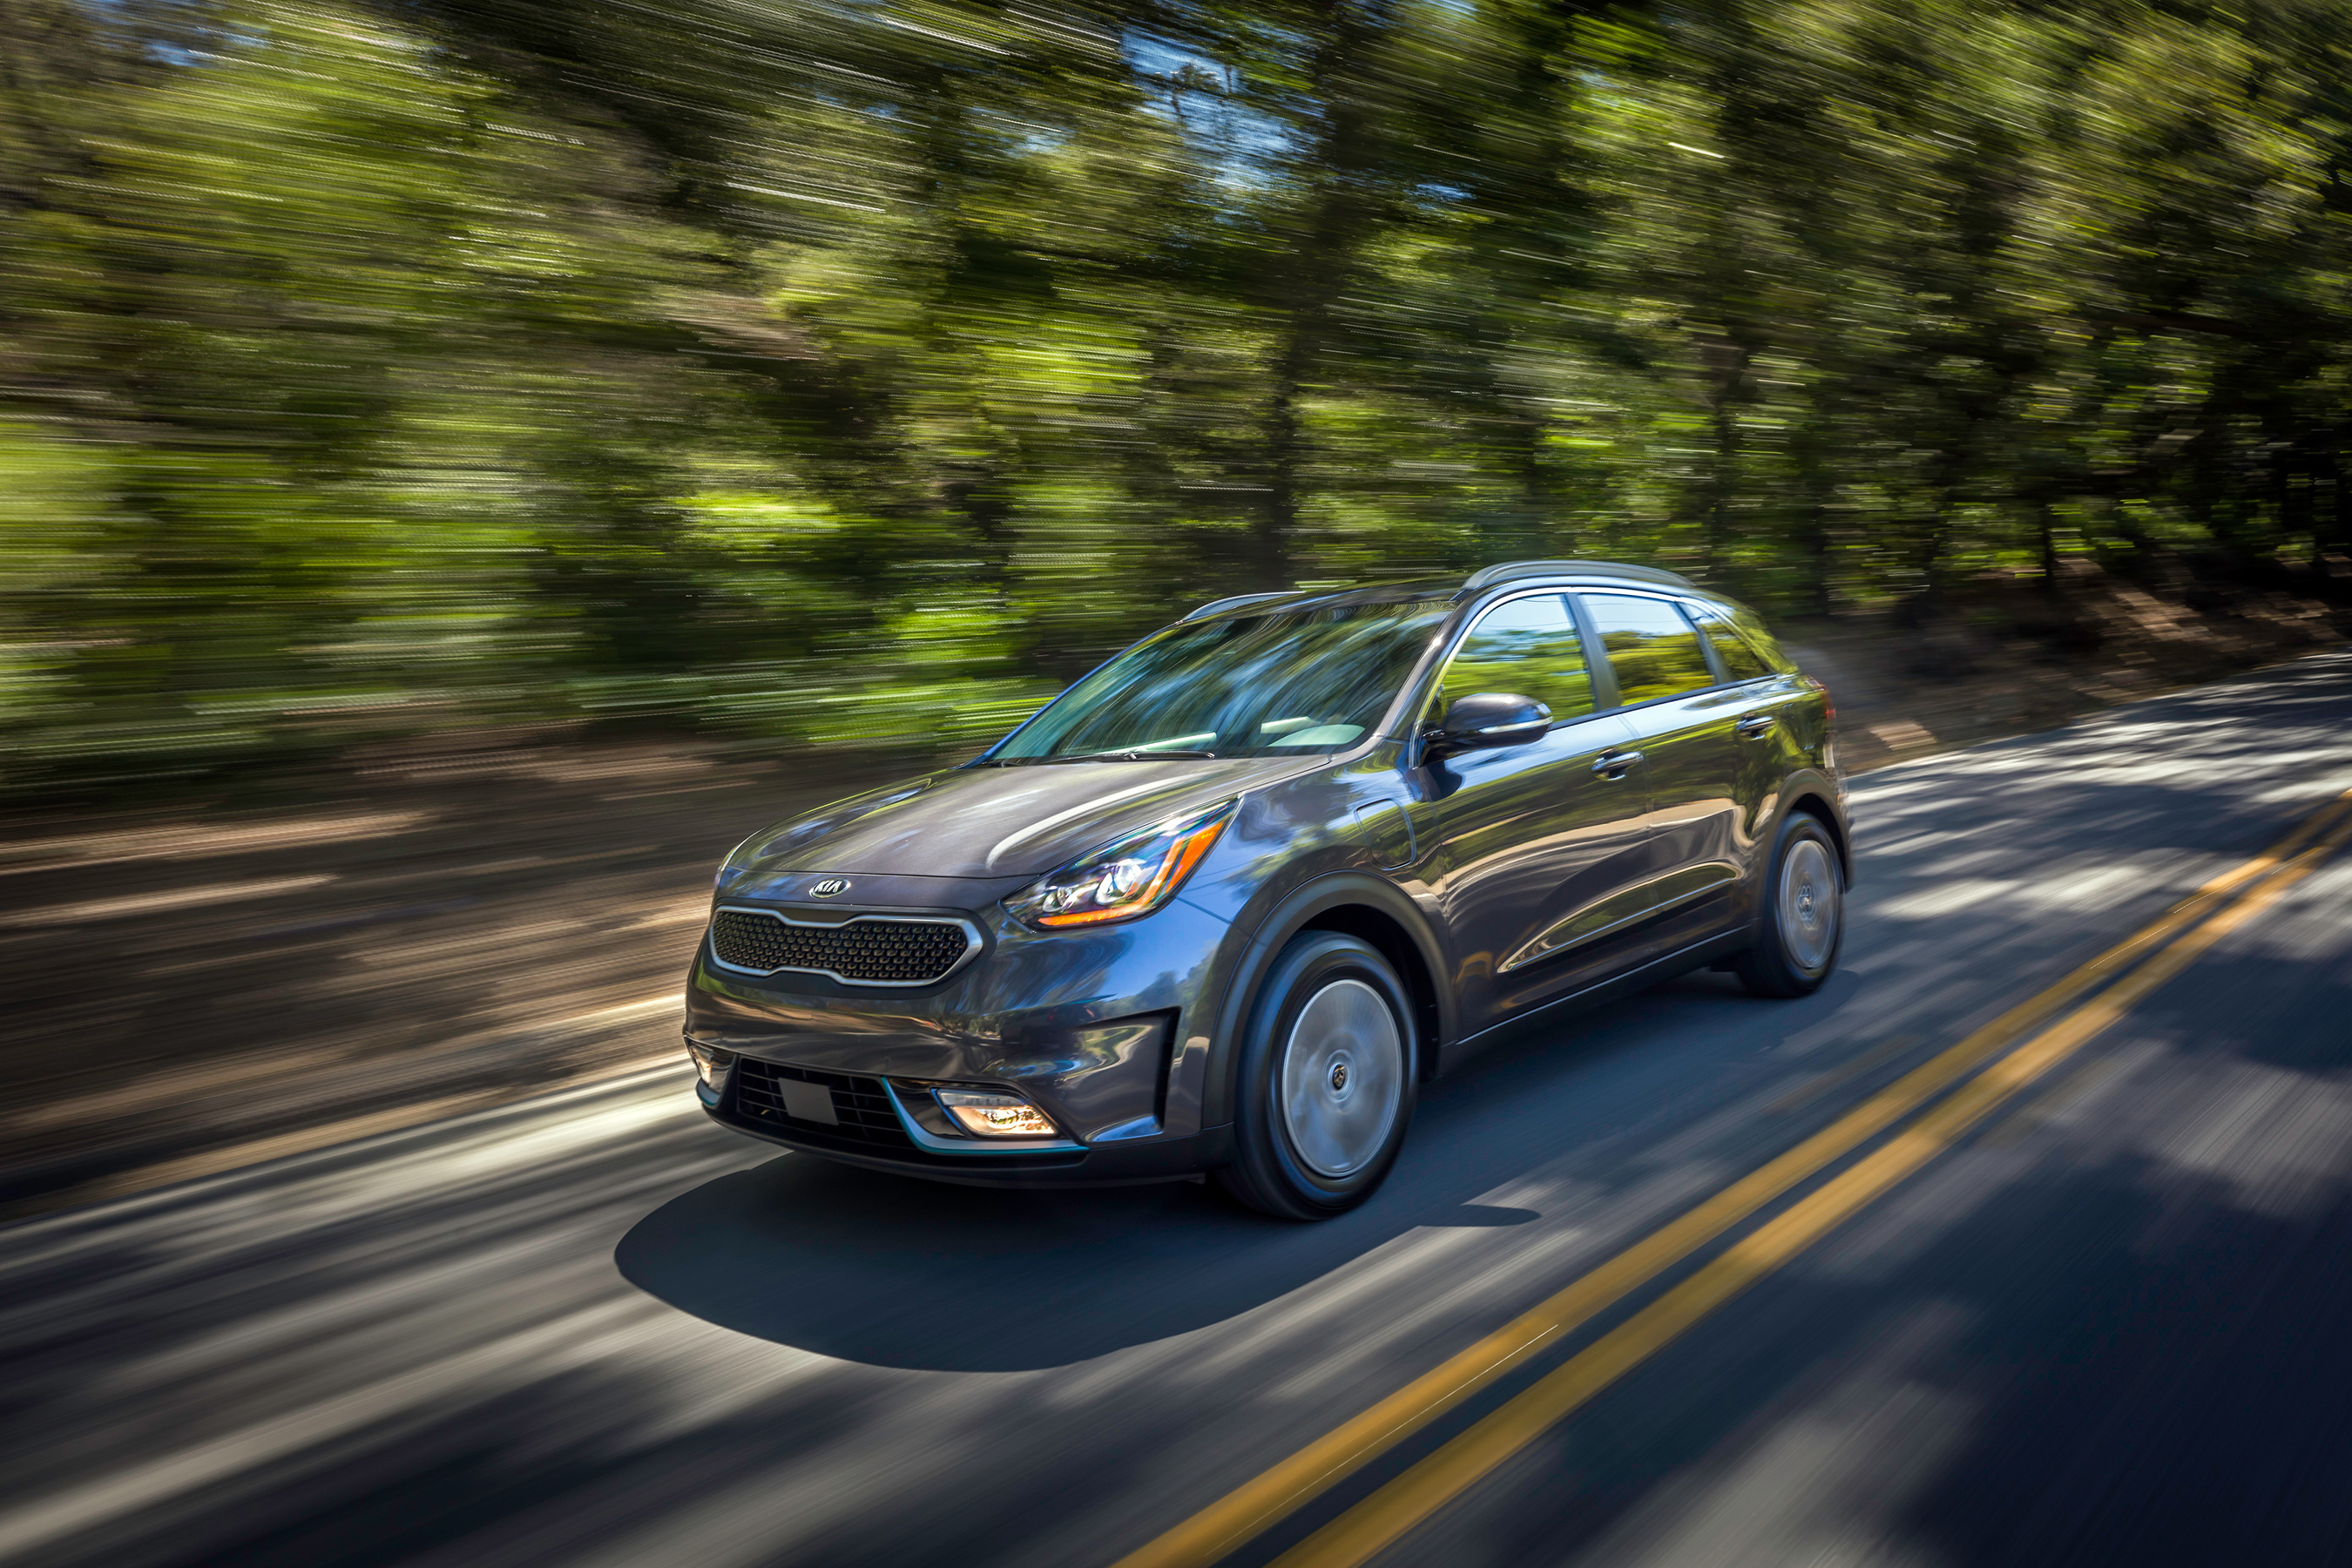 As Kia's third plug-in model, the 2018 Niro PHEV offers the same crossover utility, fun-driving and winning design of the Niro Hybrid, but with an estimated 26-miles of All-Electric Range and a total driving range rated at up to an estimated 560 miles.